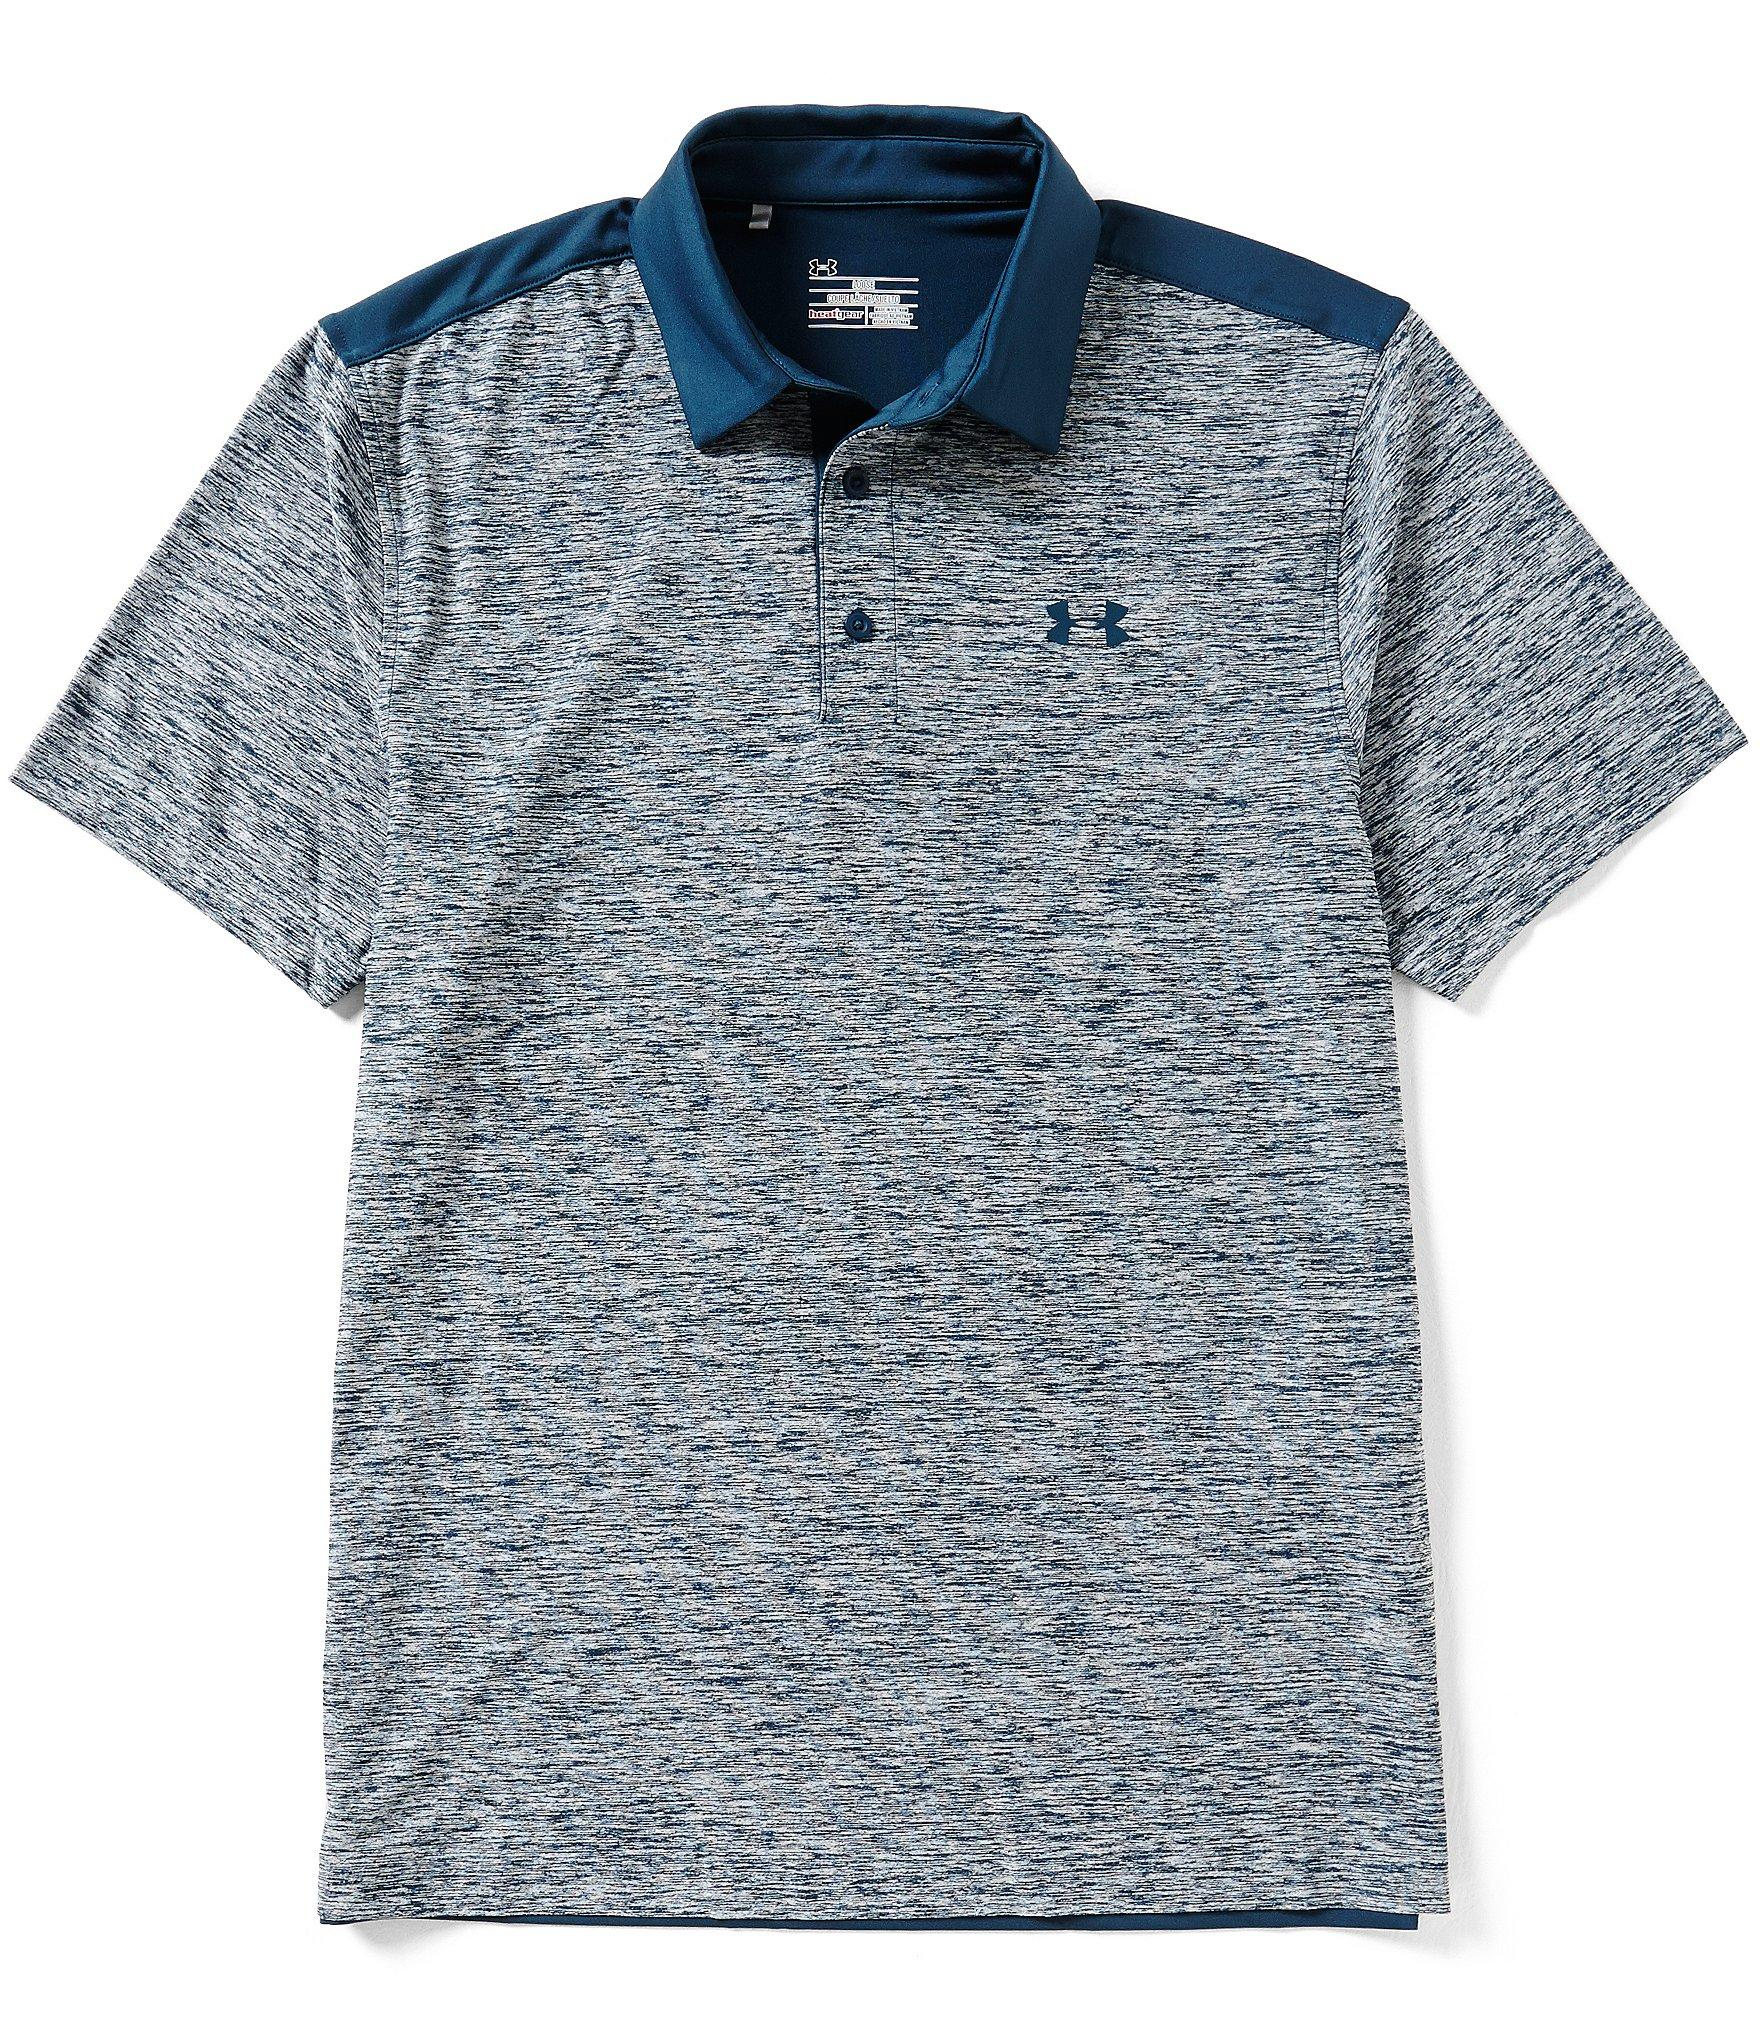 Lyst under armour golf playoff color block space dyed for Teal under armour shirt